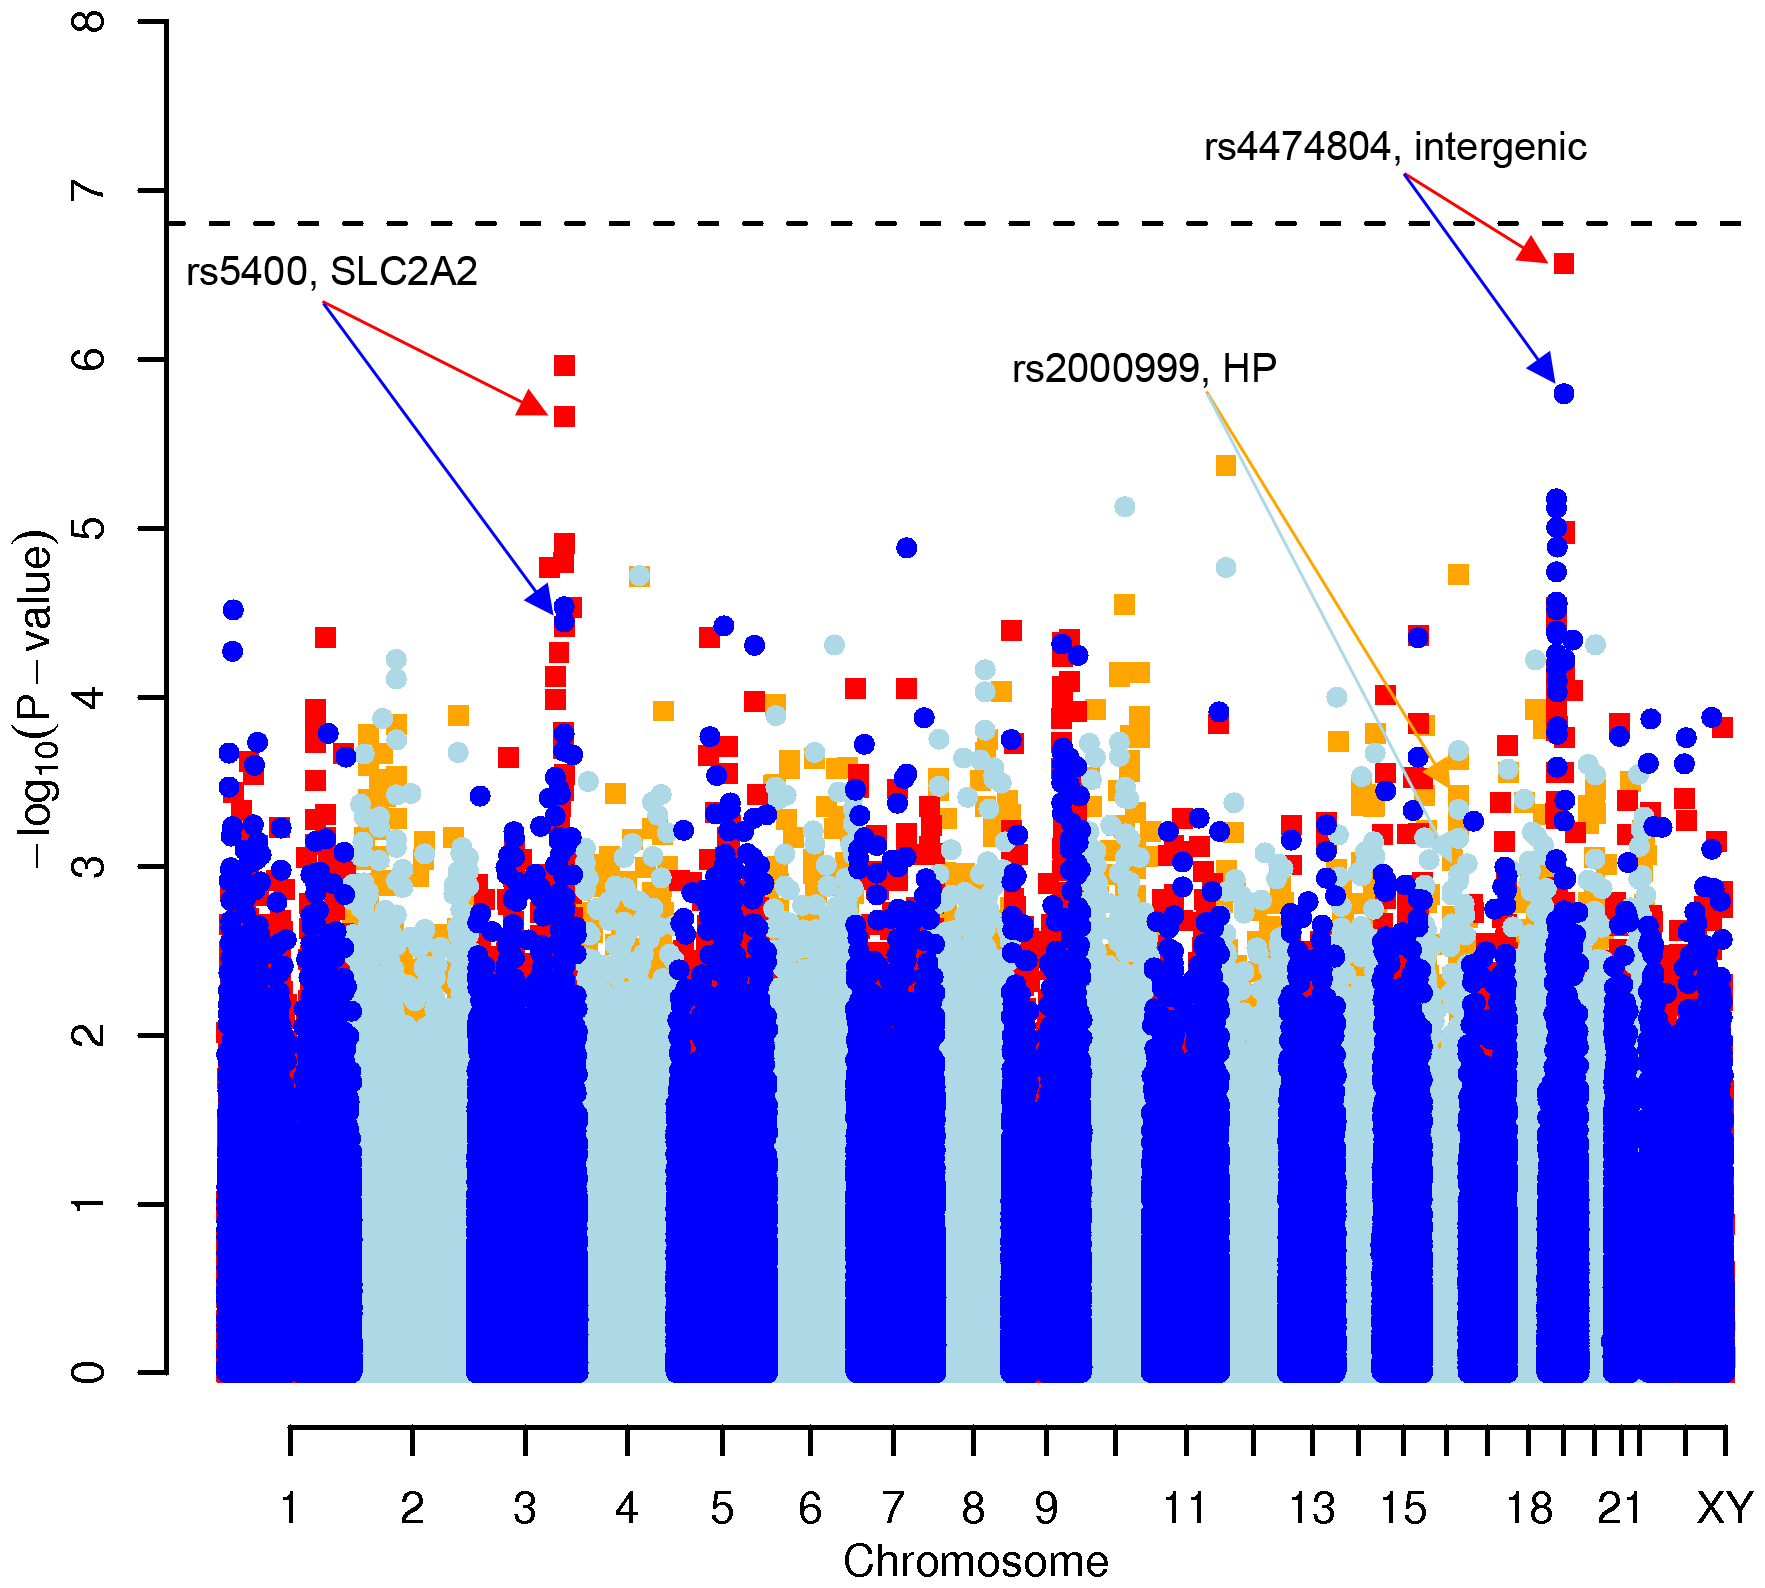 Manhattan plot of genome-wide effects on total cholesterol levels in the Swedish discovery cohort.